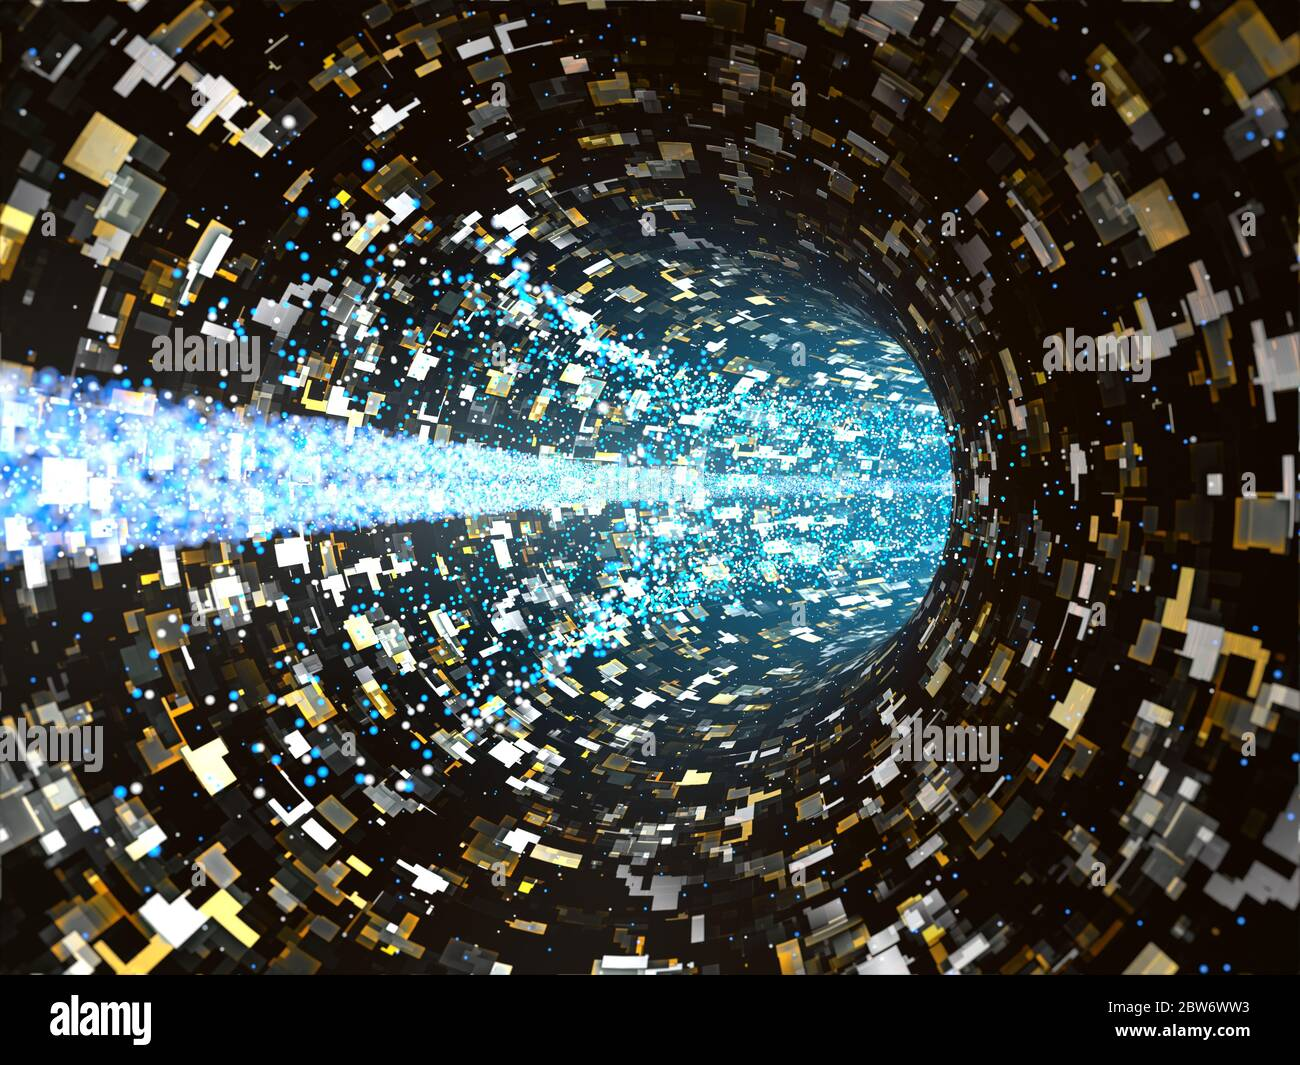 Futuristic computer transmission inside a virtual network, made of small colored squared cells and moving particles Stock Photo